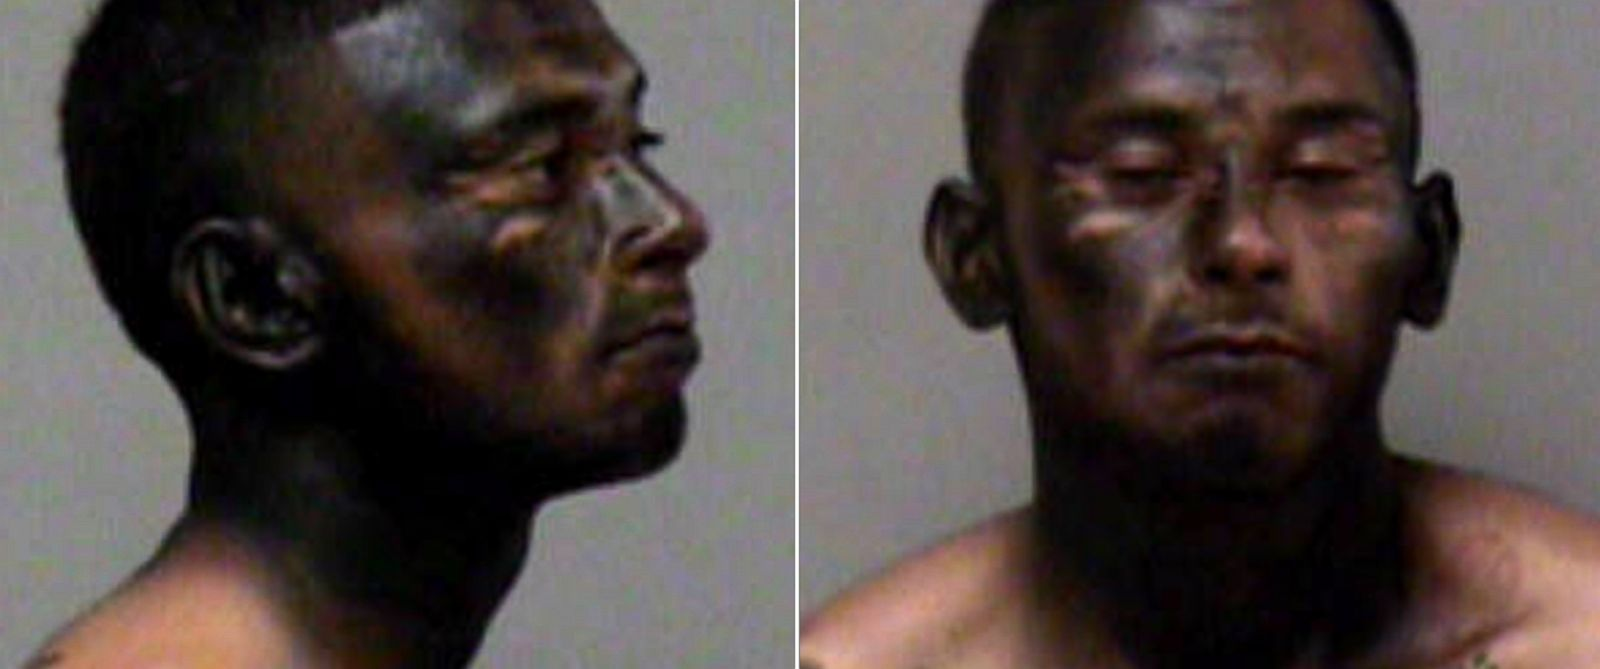 PHOTO: Jose Espinoza, 23, seen here in a police booking photo from March 15, 2015, allegedly spray painted his face black to try and evade police.